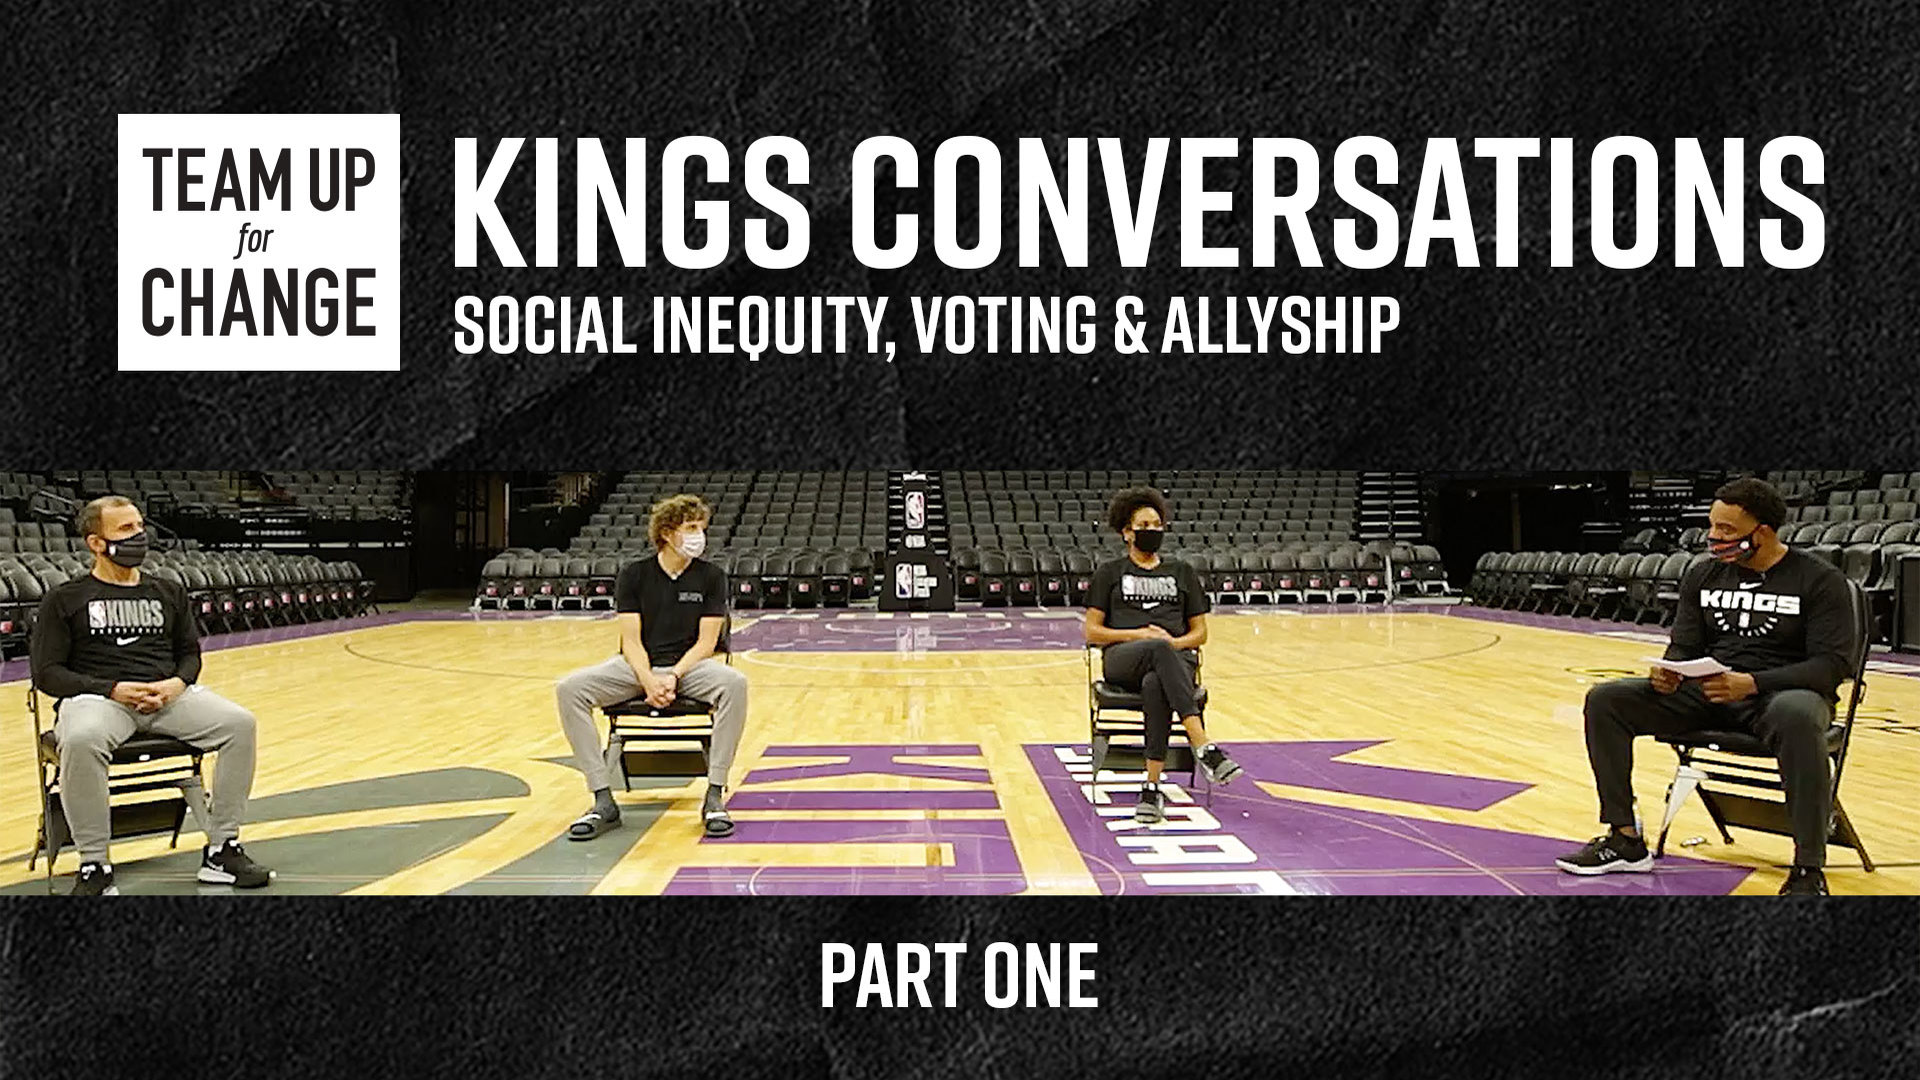 Team Up for Change | Kings Conversations Part 1